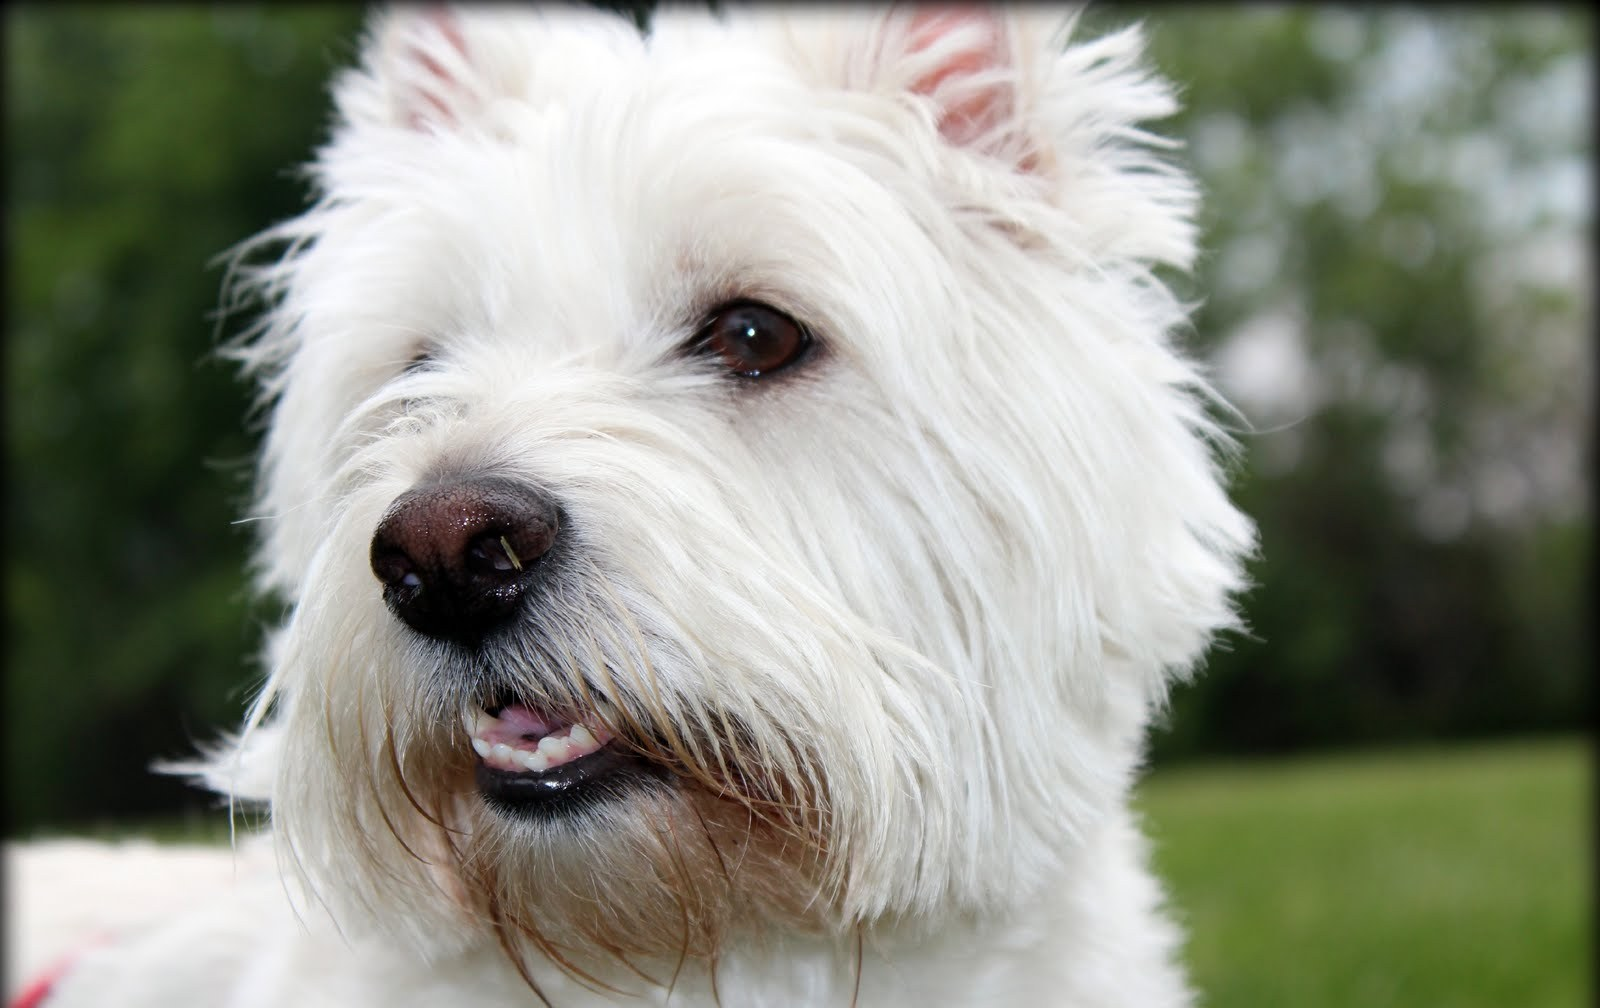 West Highland White Terrier dog face wallpaper